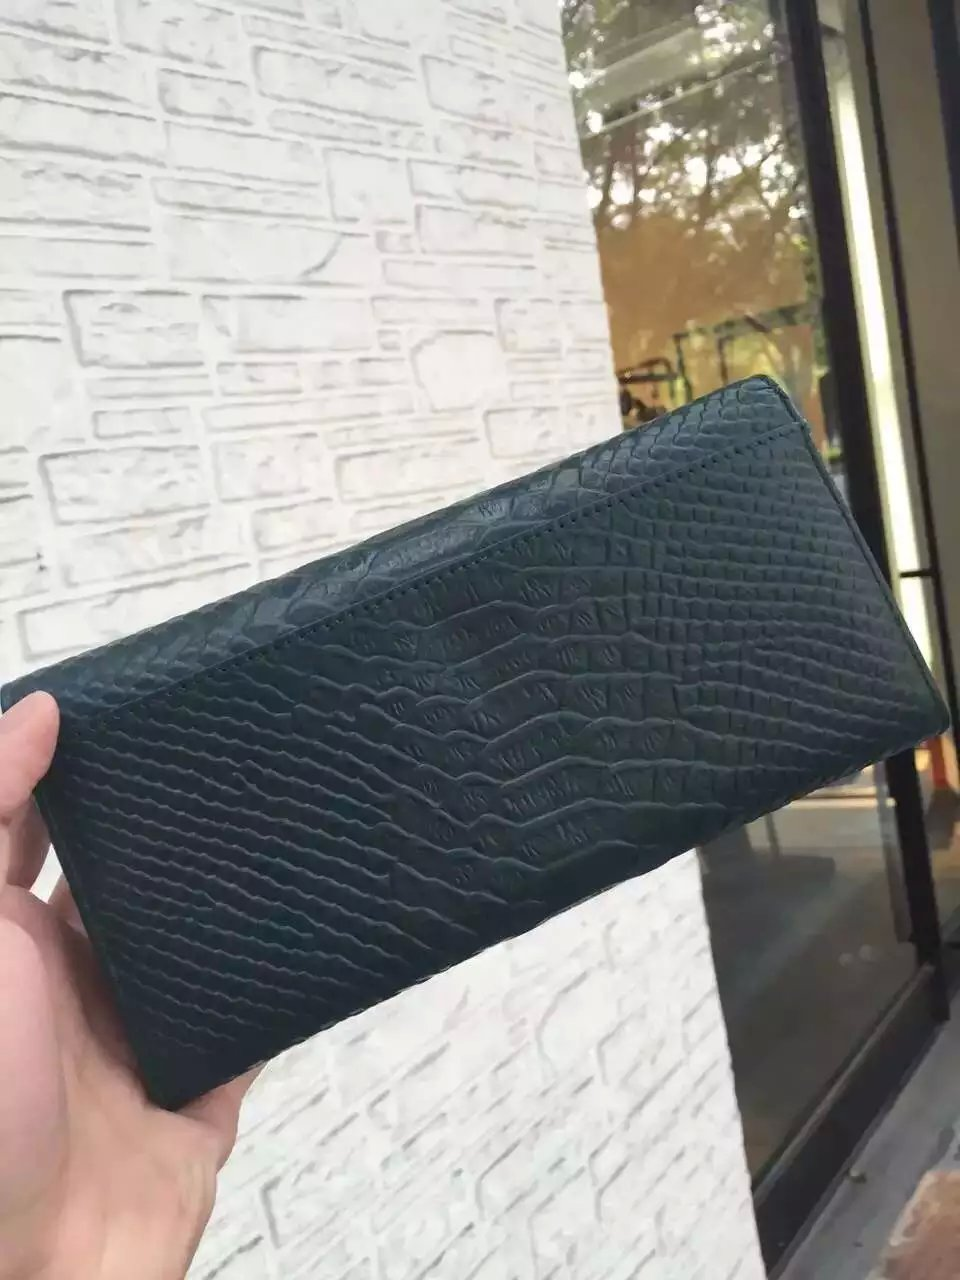 2016 Saint Laurent Bags Cheap Sale-Saint Laurent Classic Monogram Clutch in Atrovirens Python Embossed Calfskin Leather